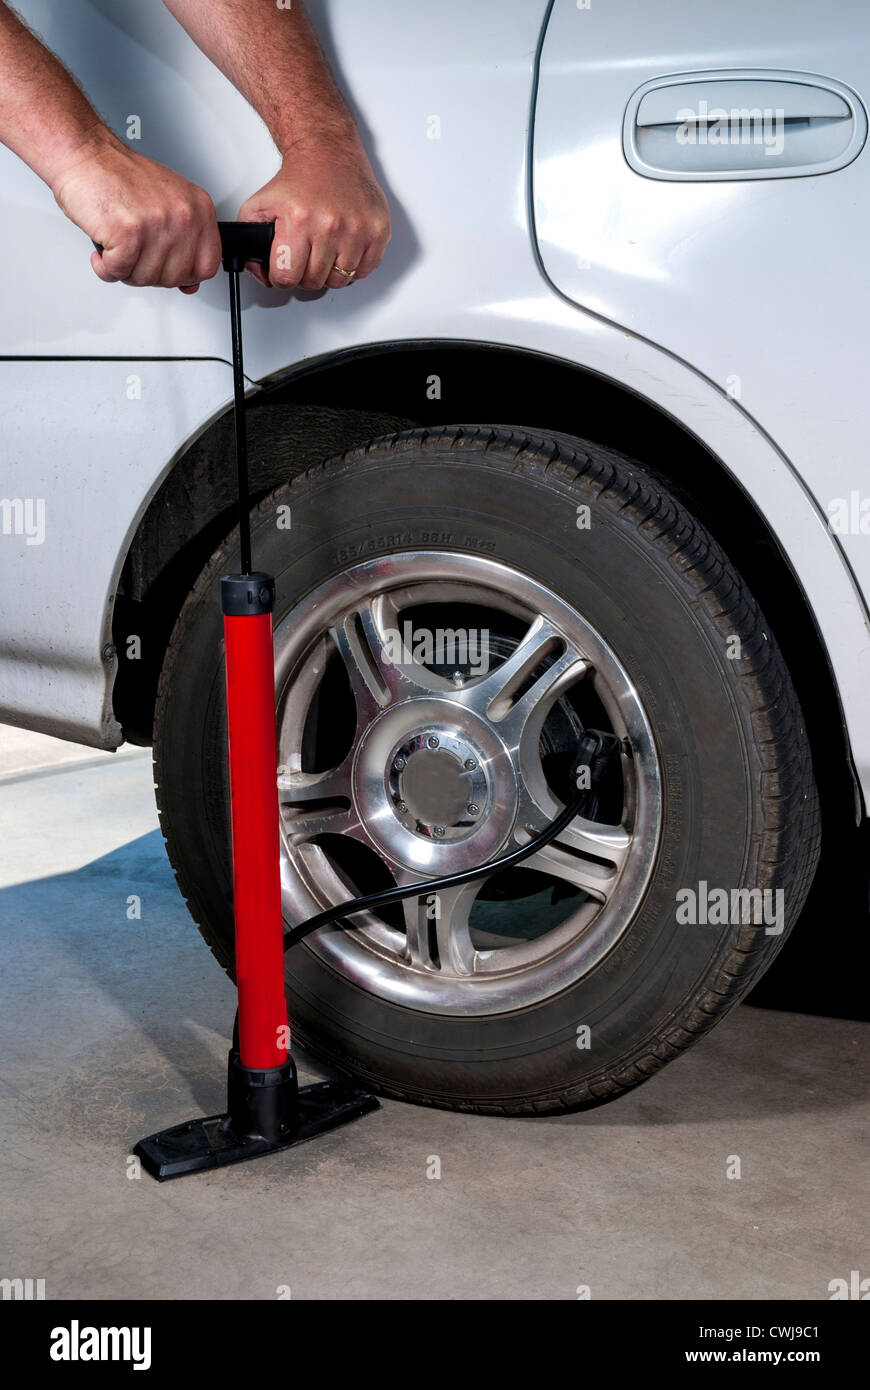 How To Put Air In Car Tires >> Using A Hand Pump To Fill A Car Tire With Air Stock Photo